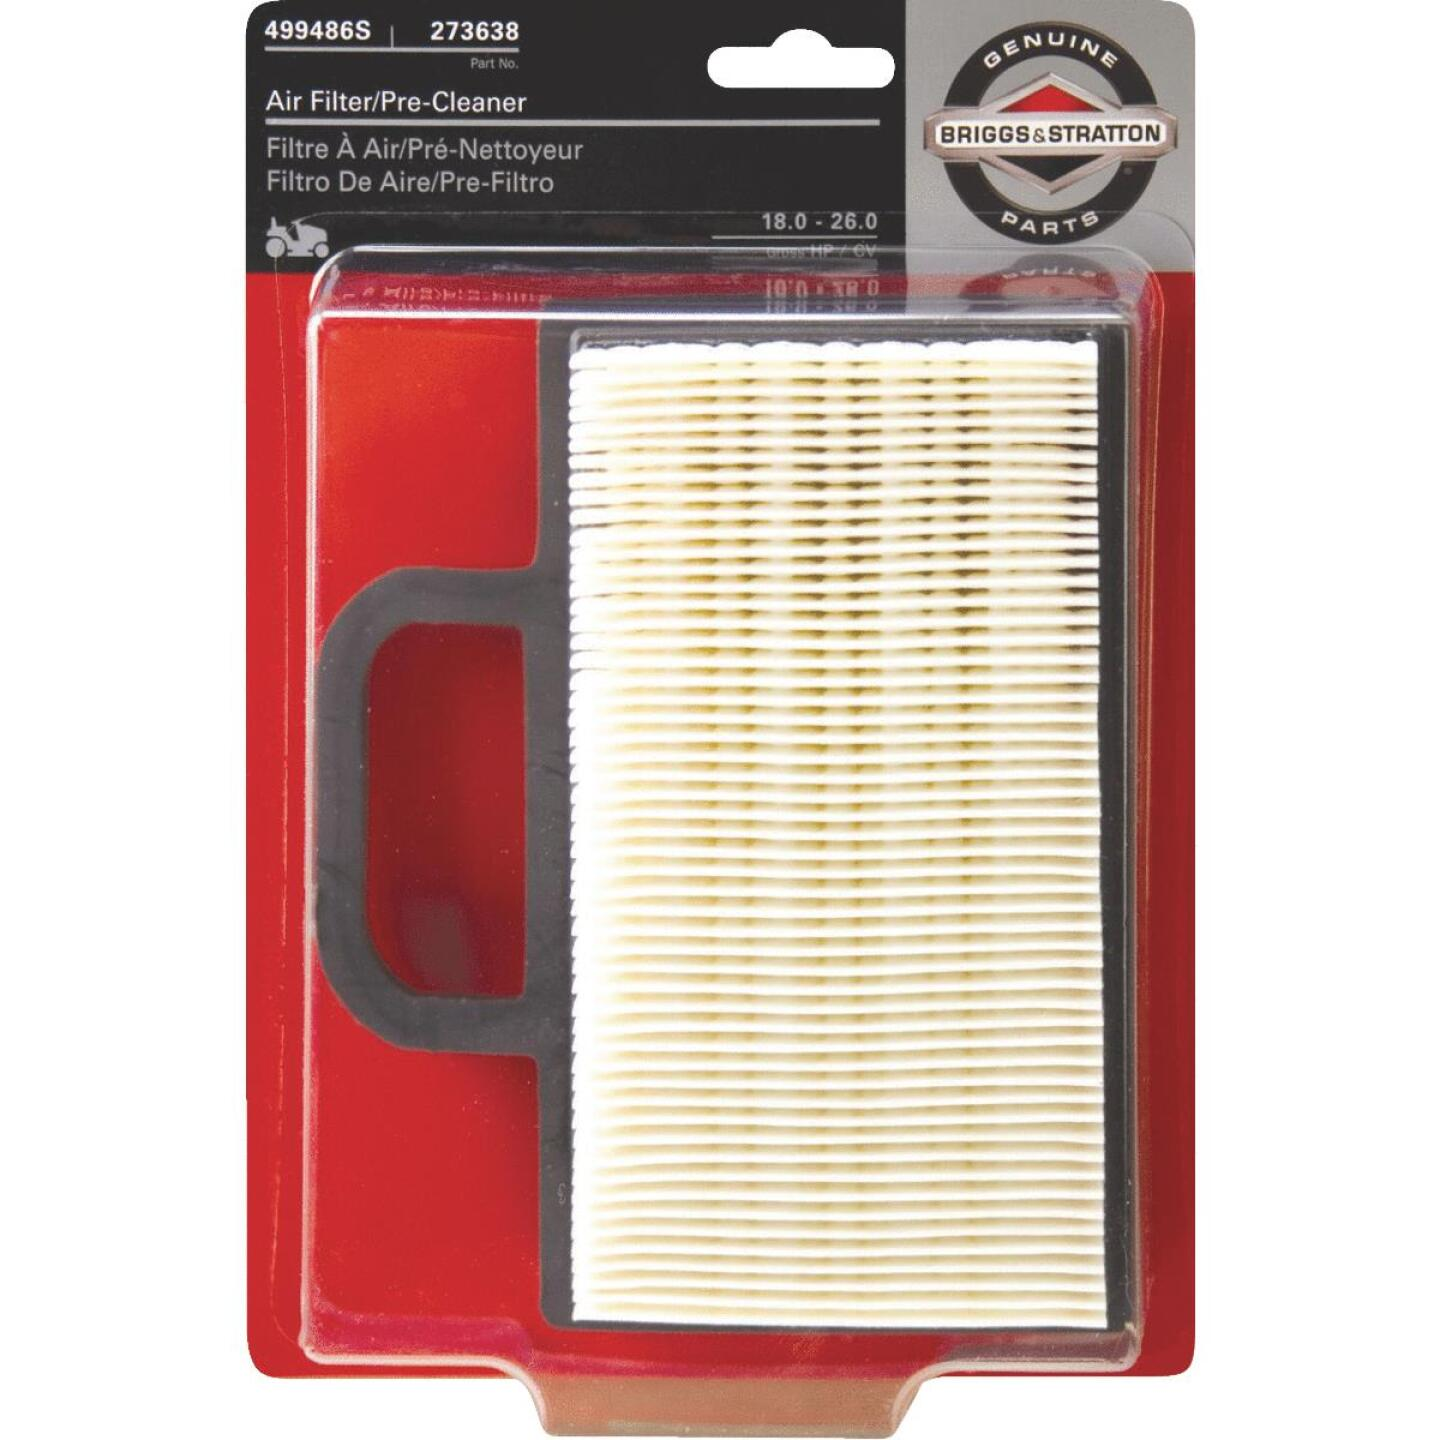 Briggs & Stratton 12 To 26 HP Paper Engine Air Filter with Pre-Cleaner Image 1